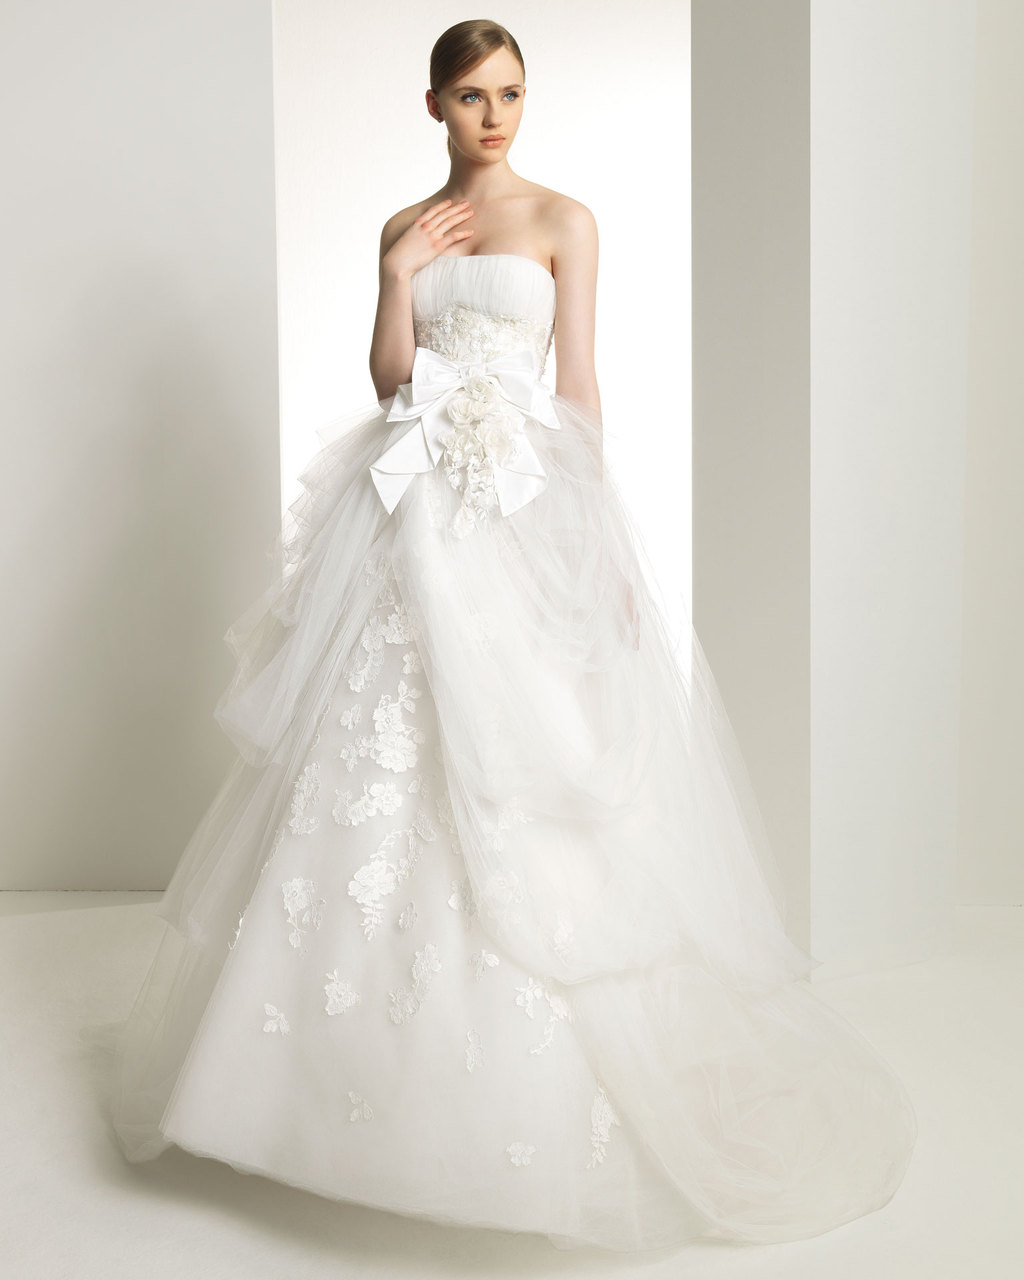 2013 wedding dress Zuhair Murad for Rosa Clara bridal gowns 101